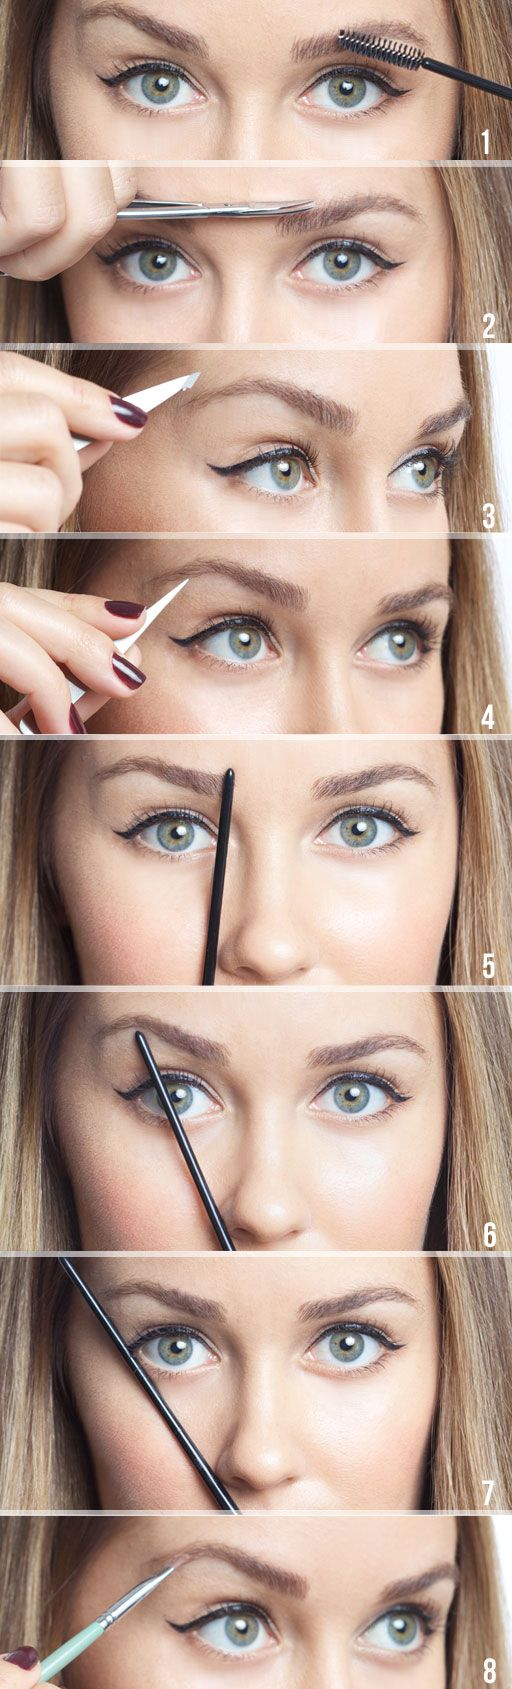 Perfect Eyebrows: Eyebrows Tips, Eye Brows, Makeup, Eyebrows Tutorials, Perfect Brows, Perfect Eyebrows, Lauren Conrad, Hair, Shape Eyebrows